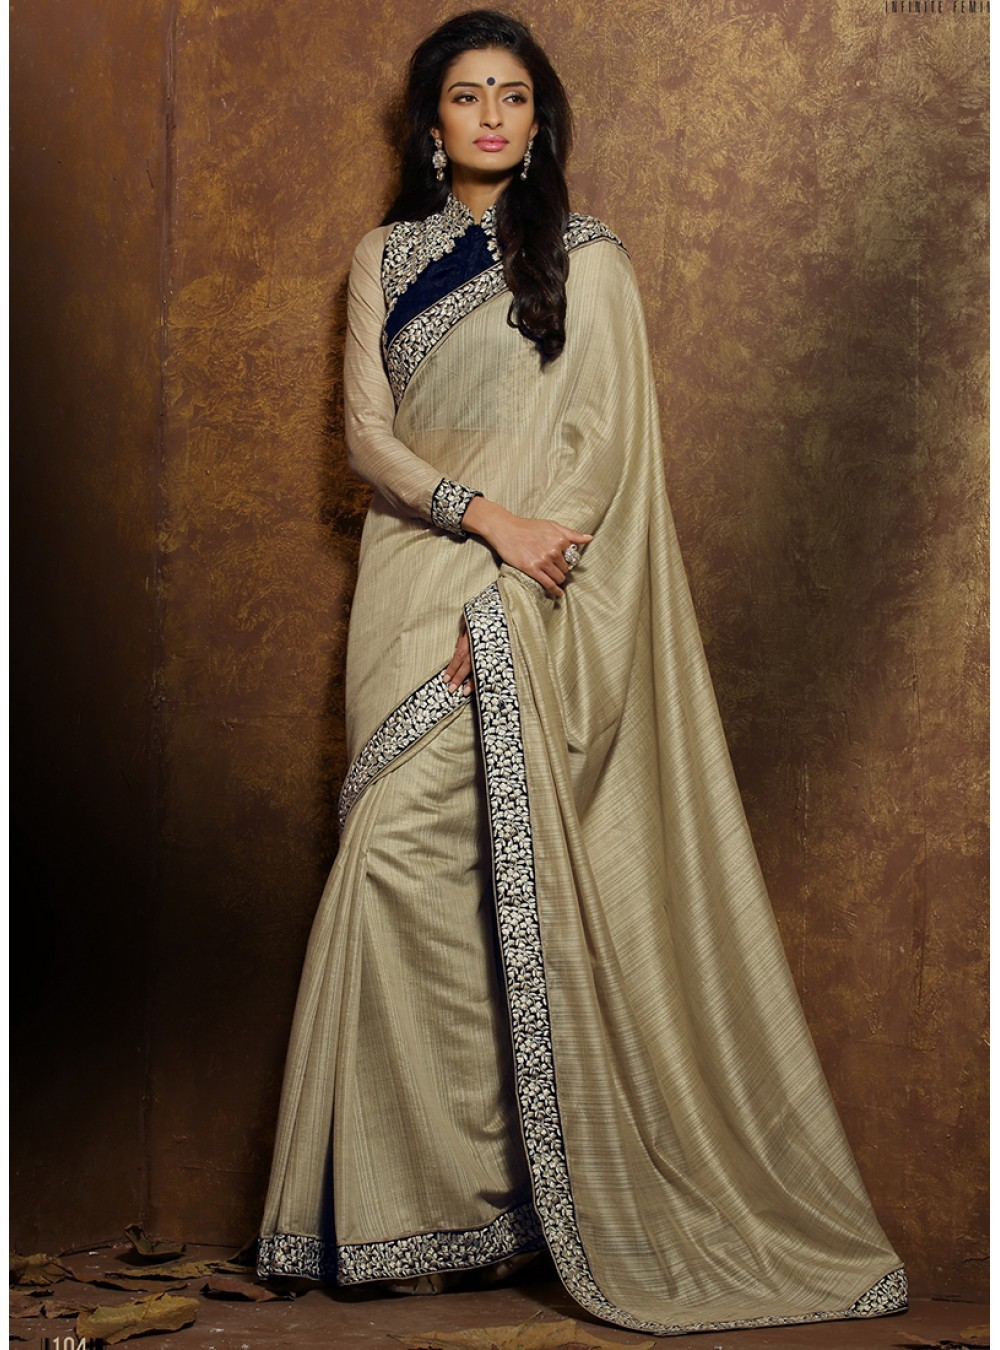 5 Trendy LIVA Sarees To Enhance Your Monsoon Fashion Trends